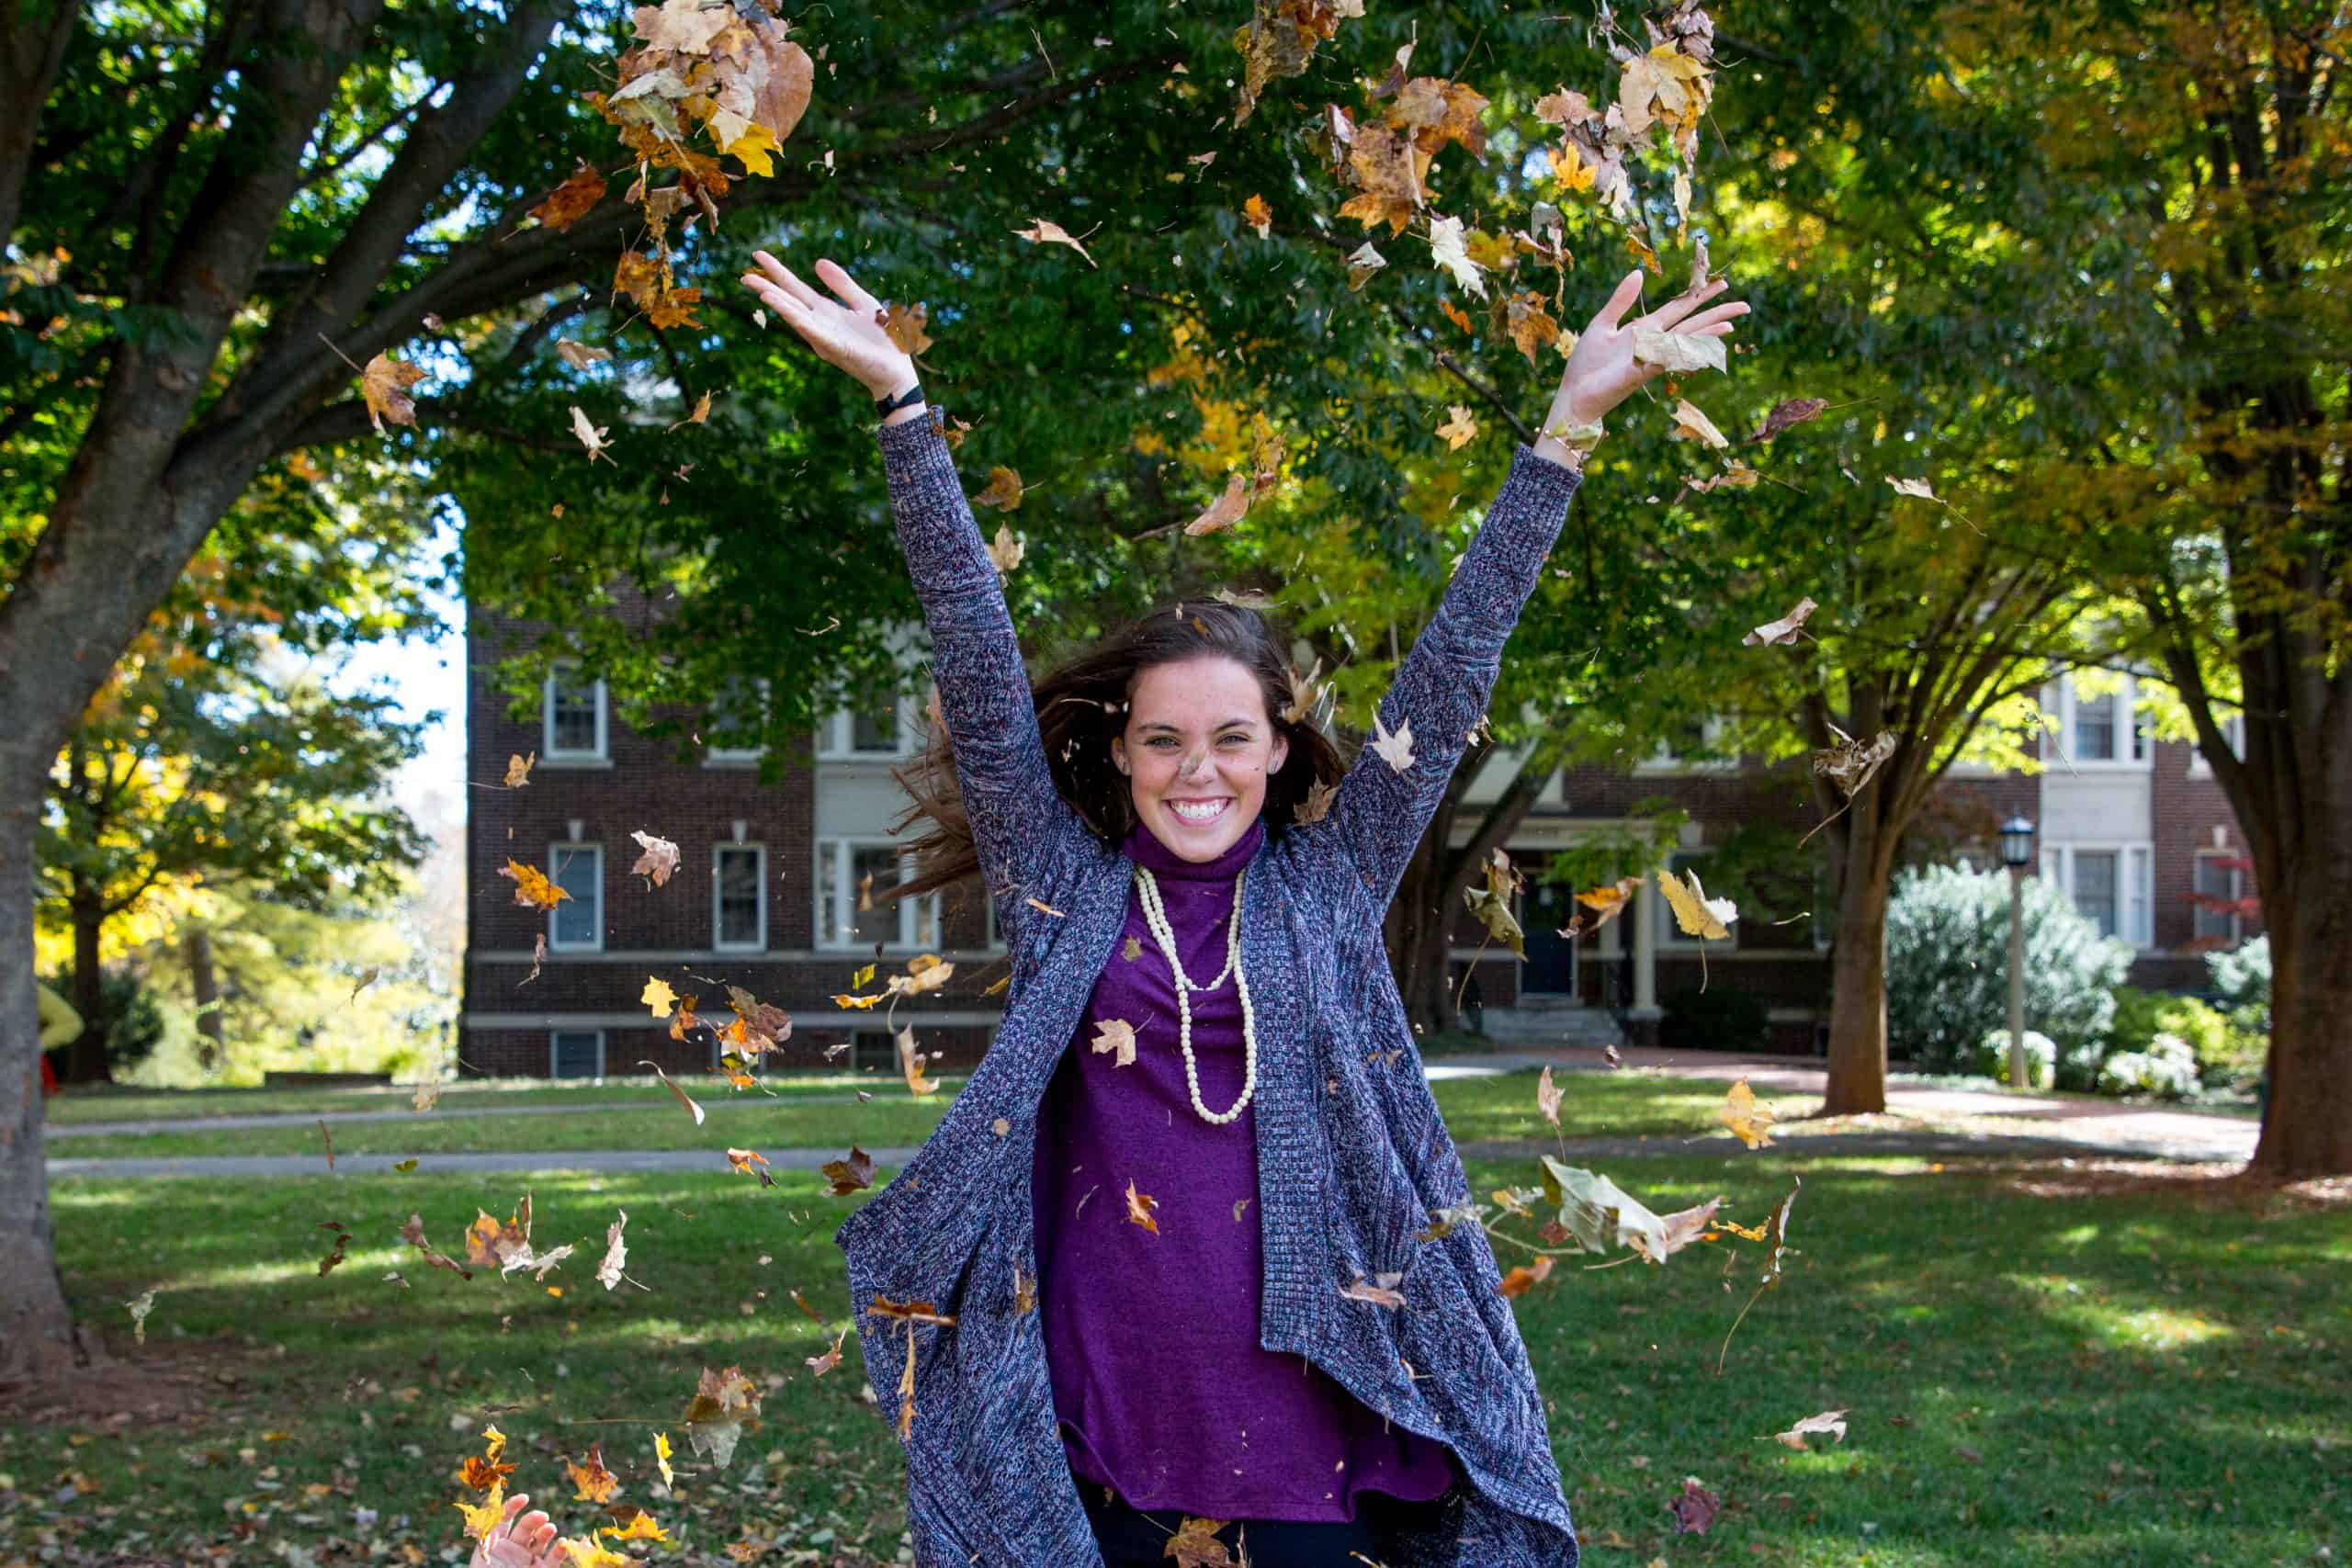 A female student throws leaves into the air